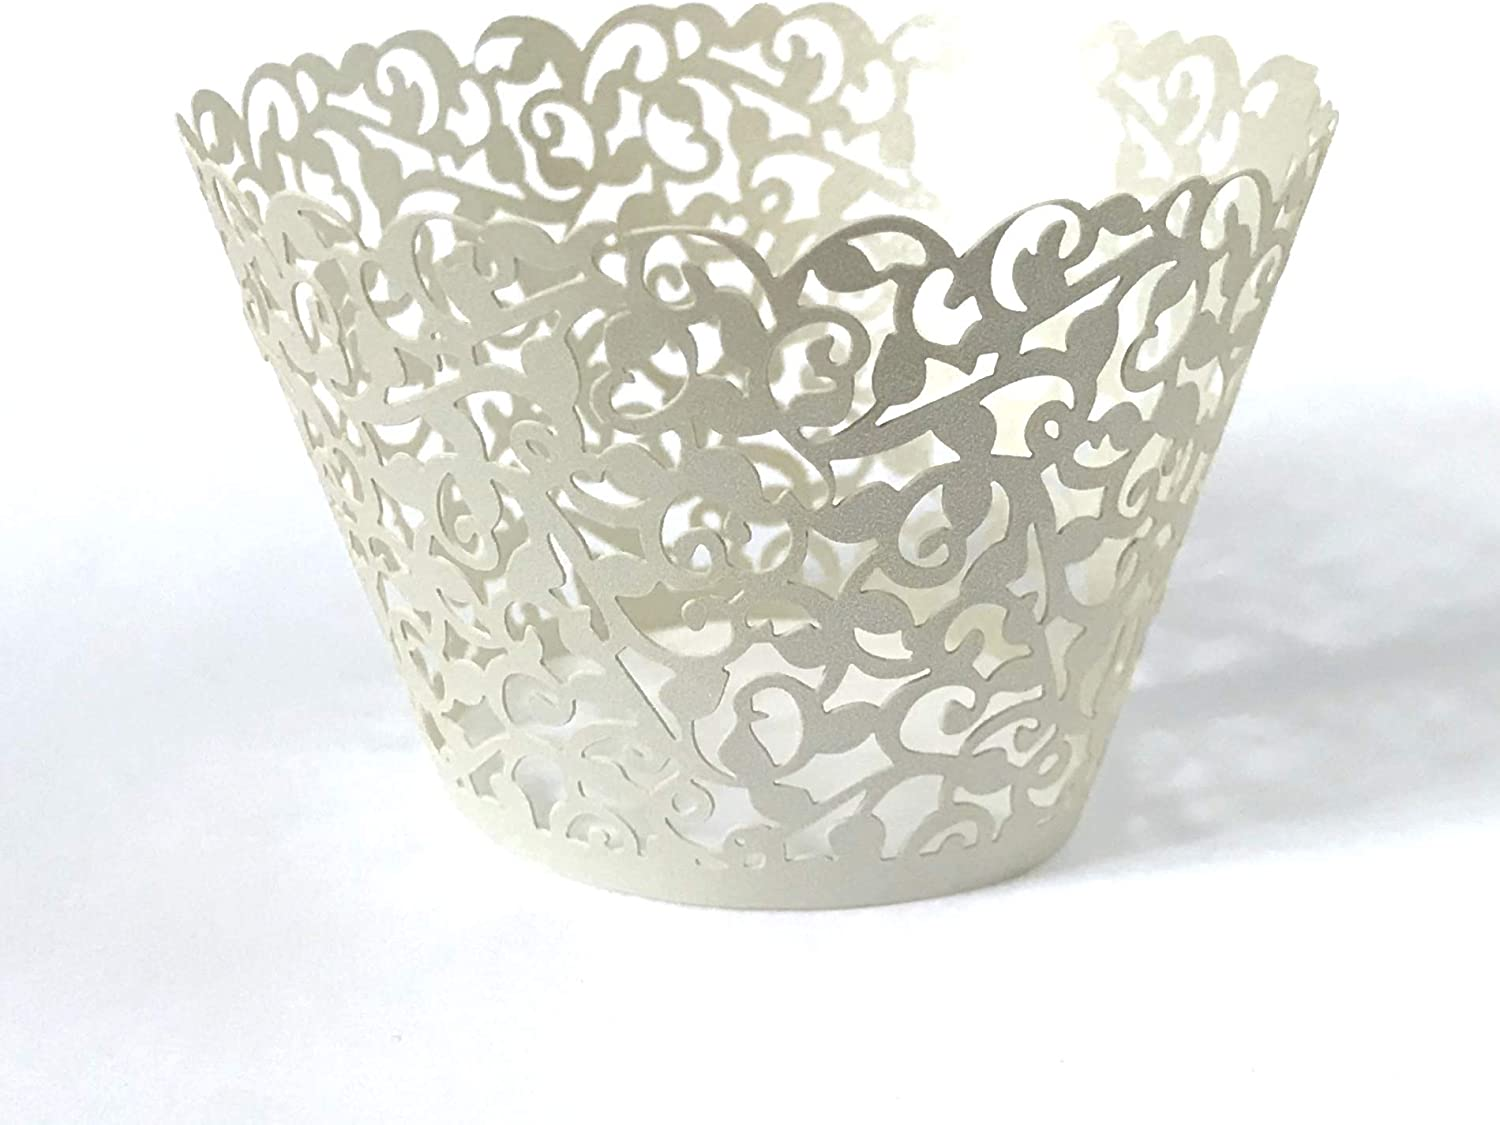 12 pcs Graduation Yellow Filigree Lace Wedding Filigree Cupcake Liners Liner Baking Cup Cupcake Wrapper Wrappers